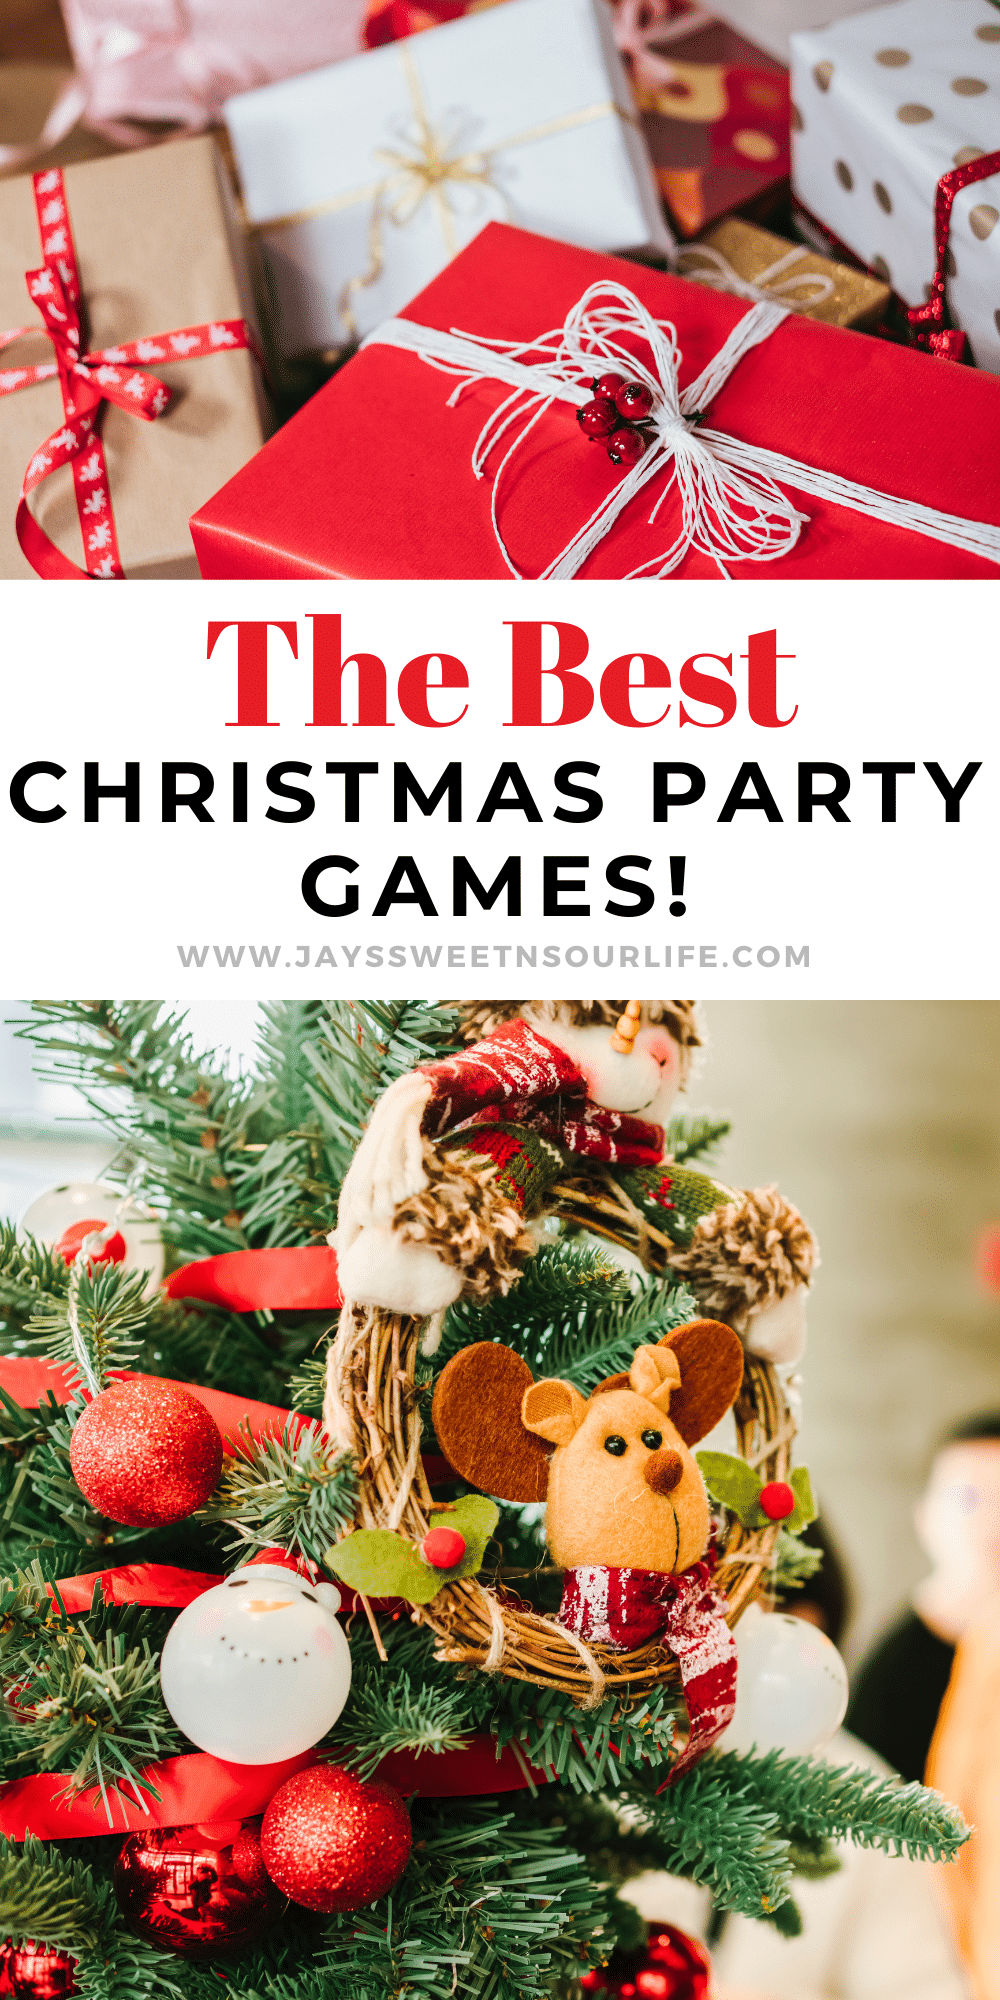 The Best Christmas Party Games. This list of The Best Christmas Party Games for families is a guaranteed hit this holiday season. Add some fun and exciting party games to your holiday gathering that will make a Christmas everyone will remember!